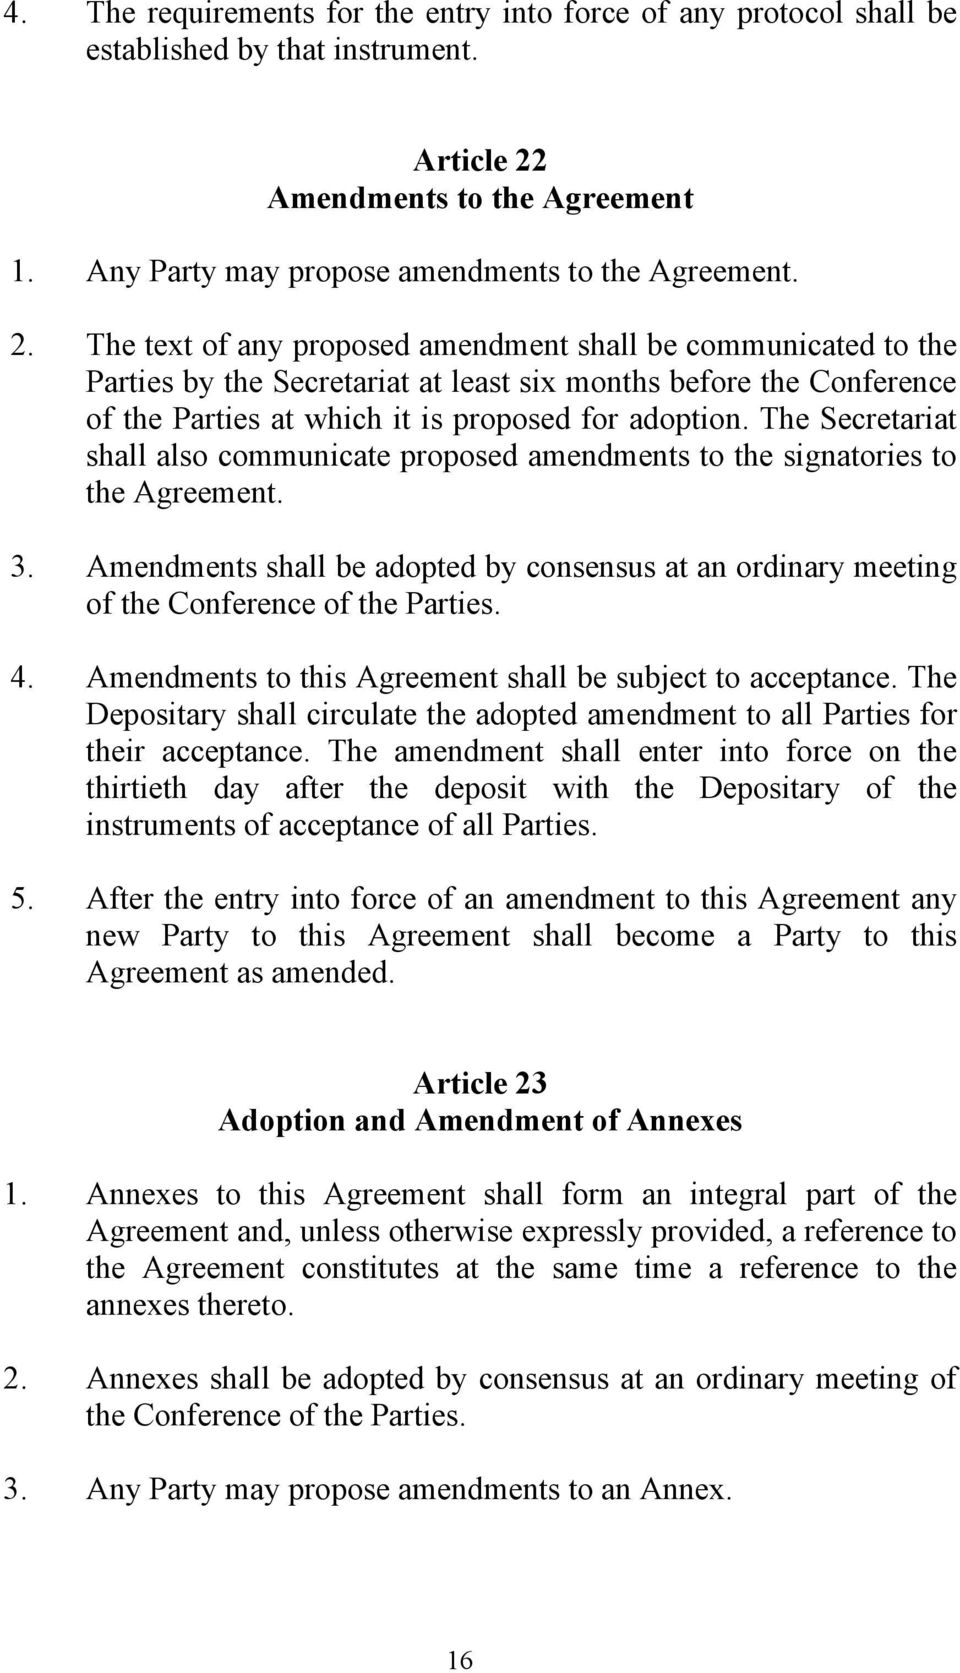 The text of any proposed amendment shall be communicated to the Parties by the Secretariat at least six months before the Conference of the Parties at which it is proposed for adoption.